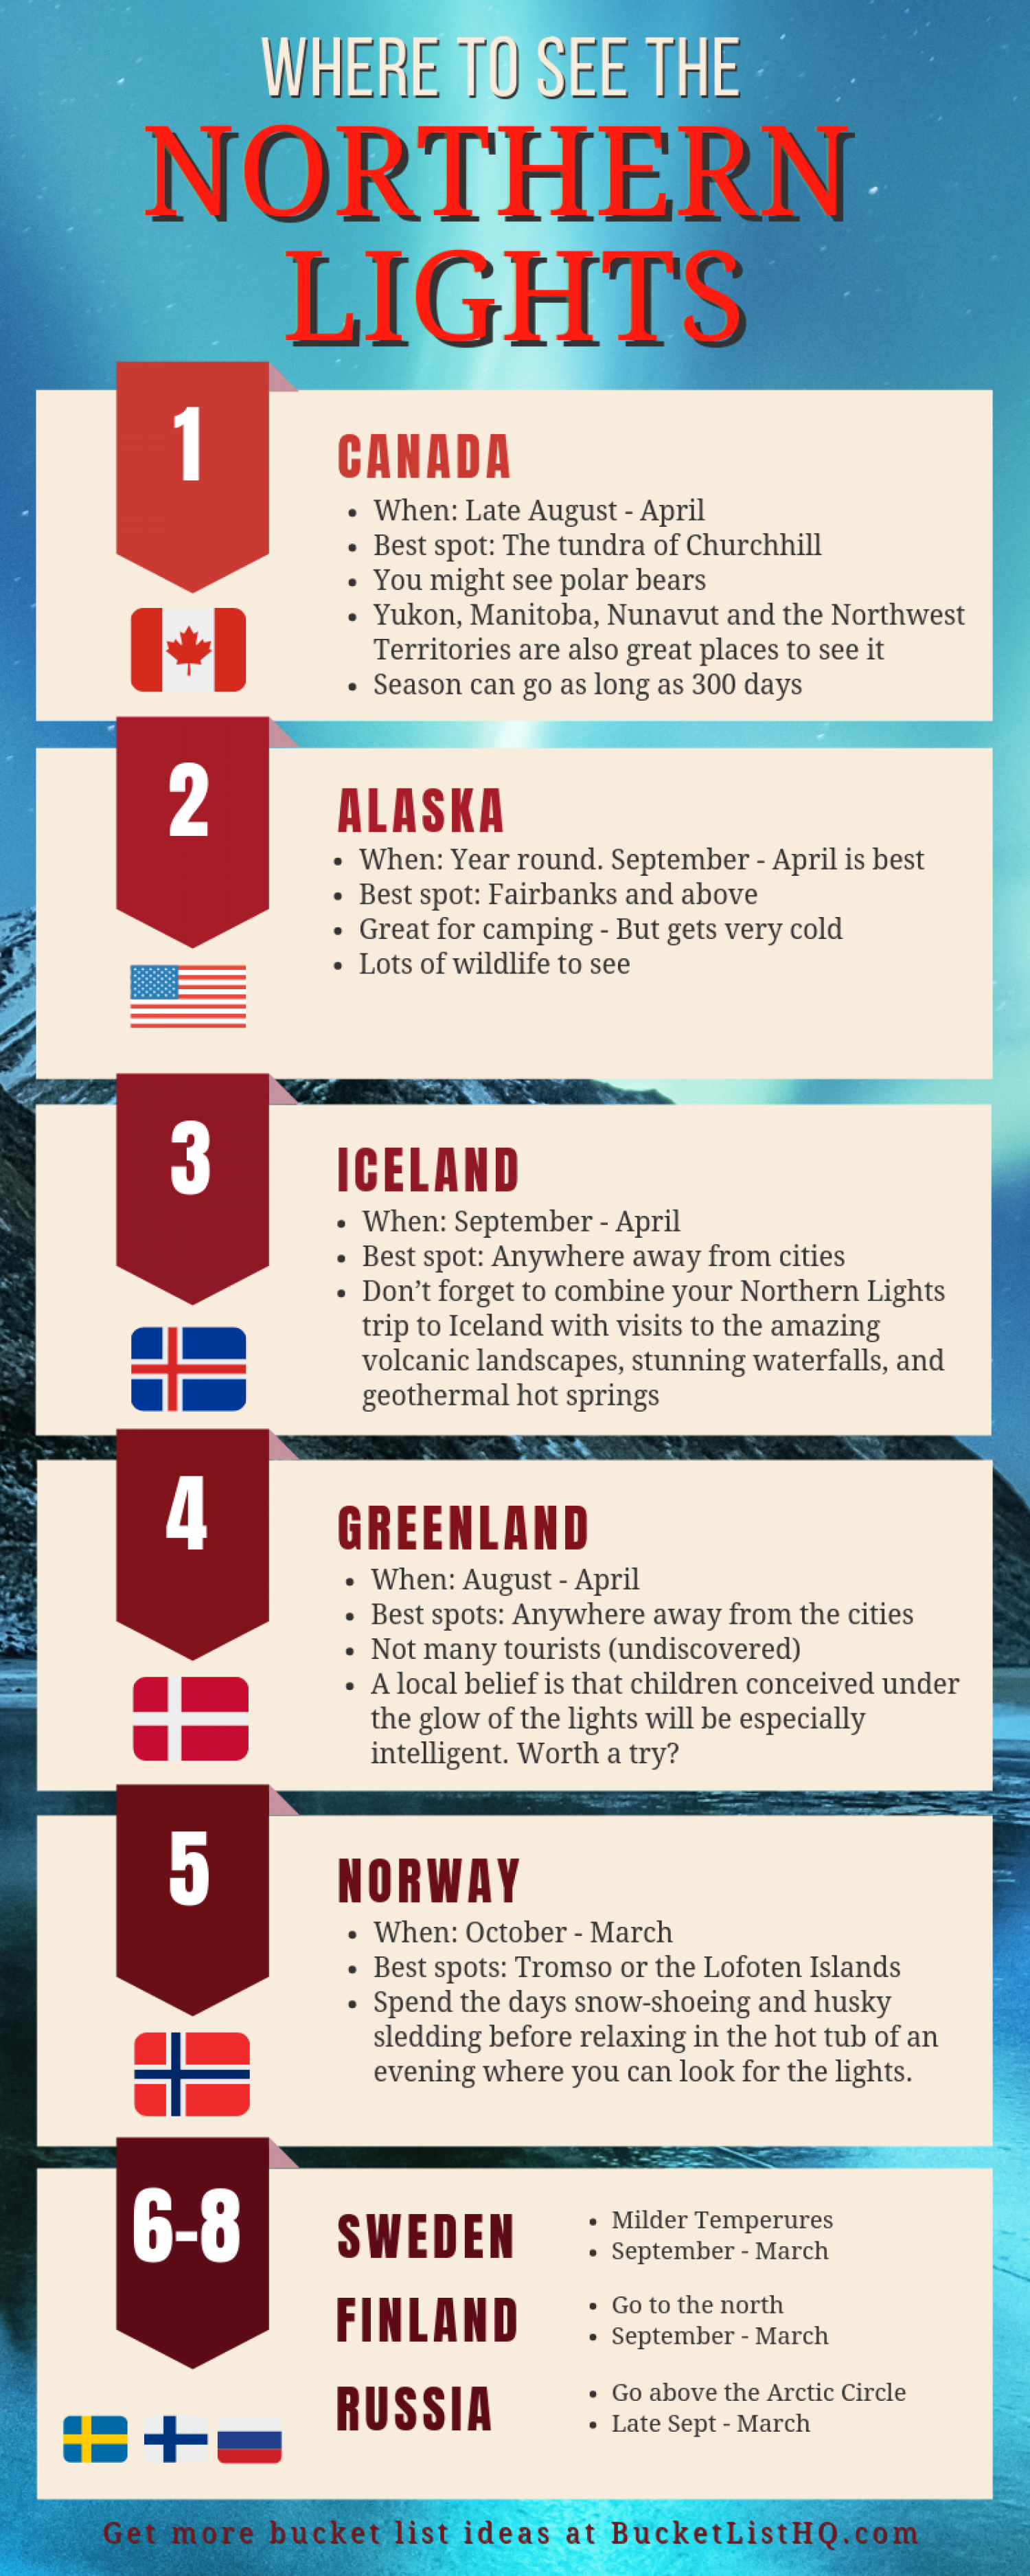 Where to see the Northern Lights infographic Infographic